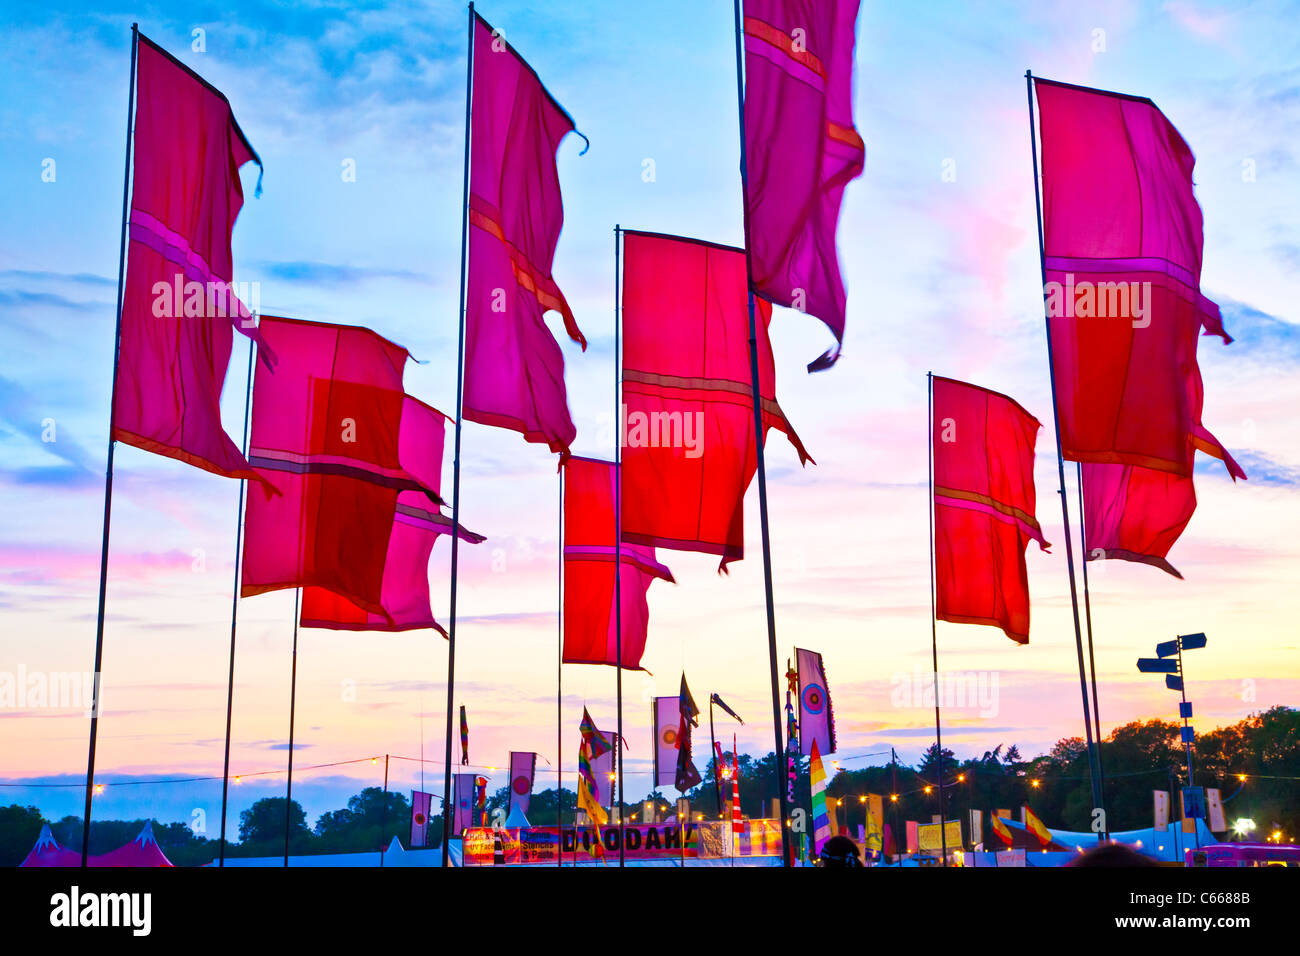 Festival flags at twilight at WOMAD 2011, Charlton Park, Malmesbury, Wiltshire, England, UK - Stock Image